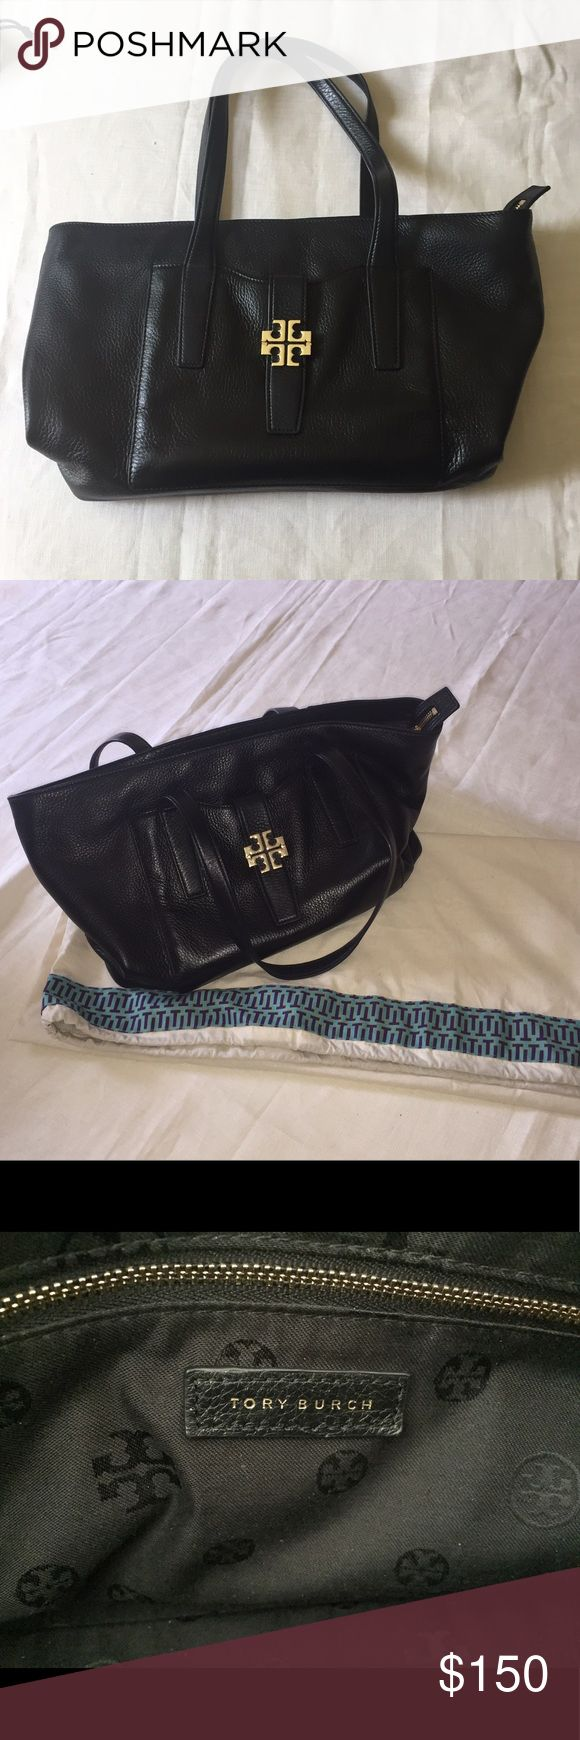 Black Tory Butch Pebbled Leather Purse Lightly used Tory Burch pebbled leather tote; gold hardware; black canvas interior; original dust bag included Tory Burch Bags Totes